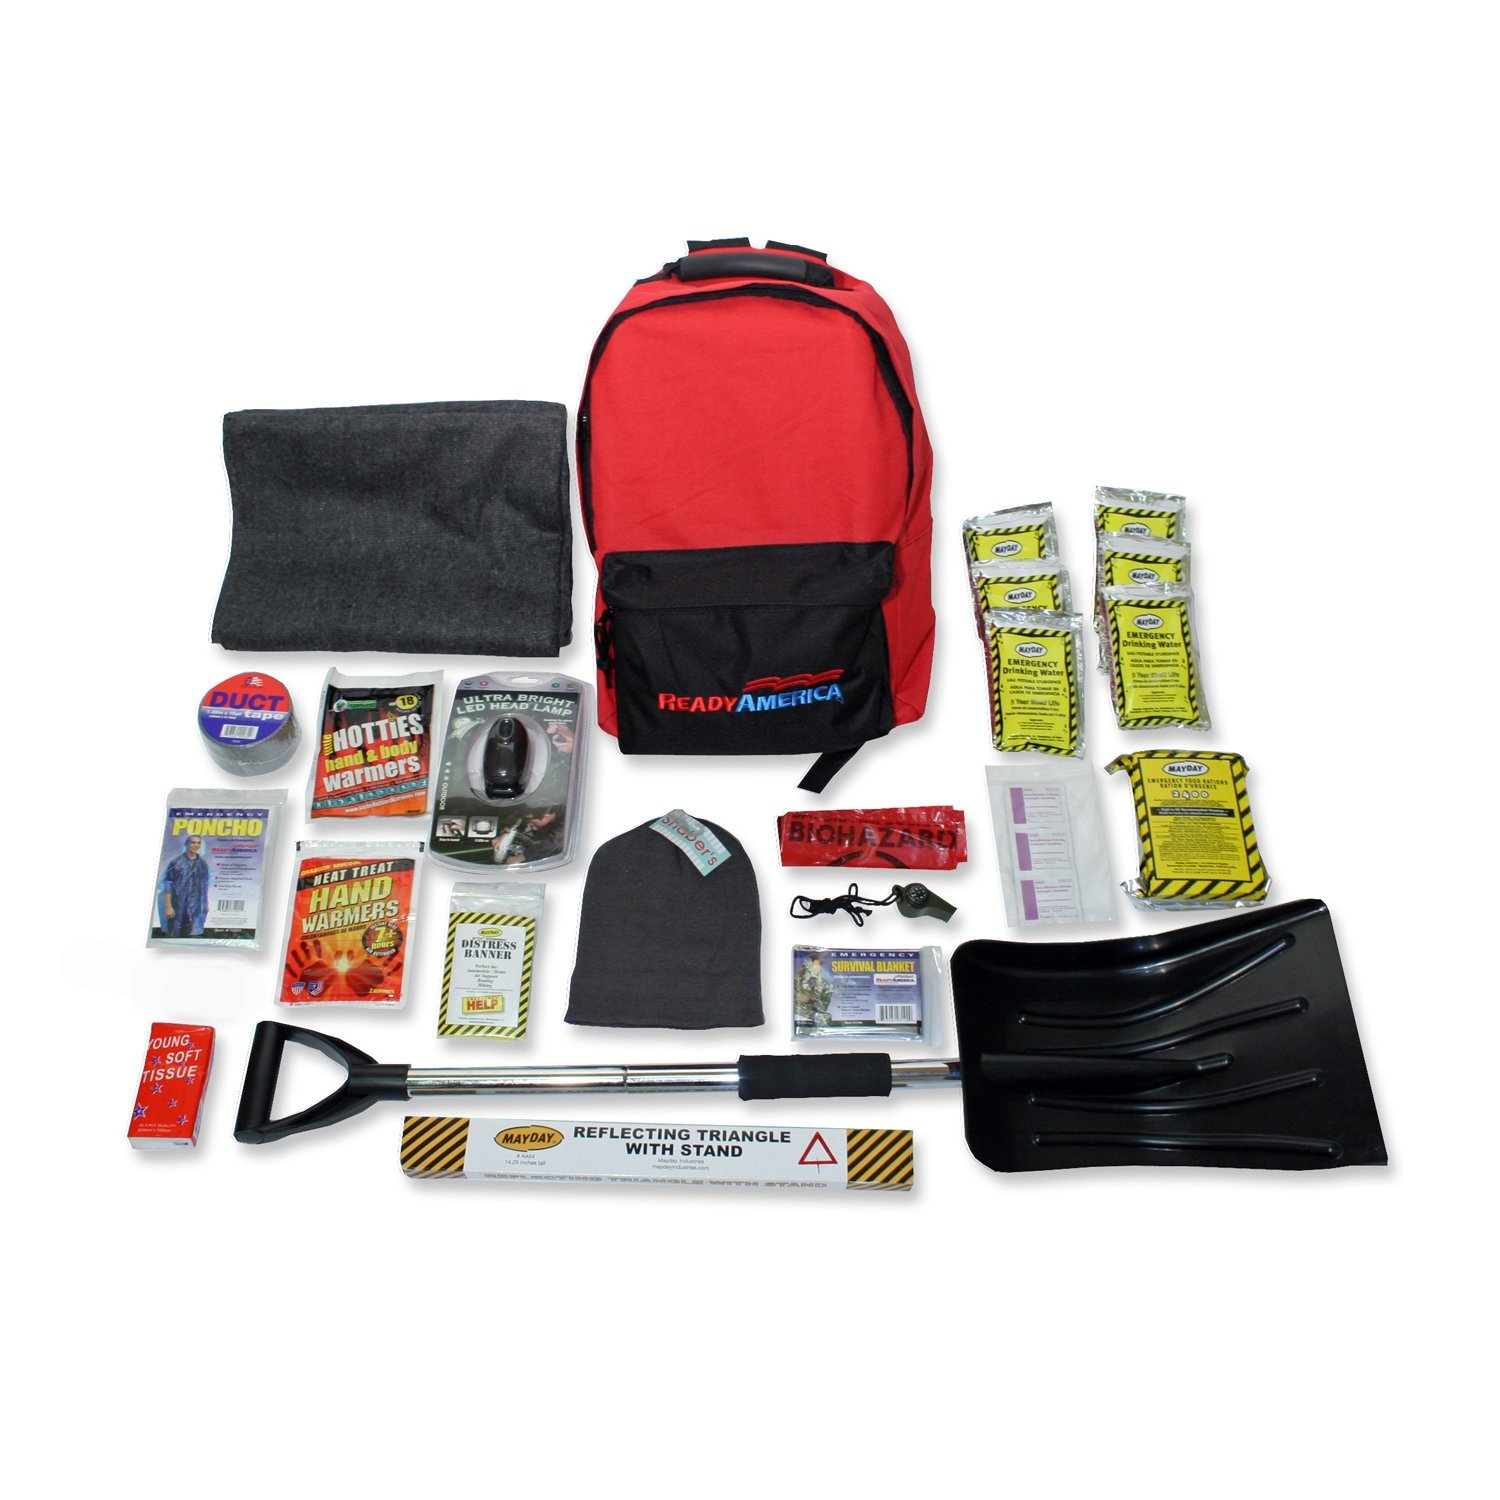 Ready America 1Person Cold Weather Survival Kit-3 Day Pack by Ready America